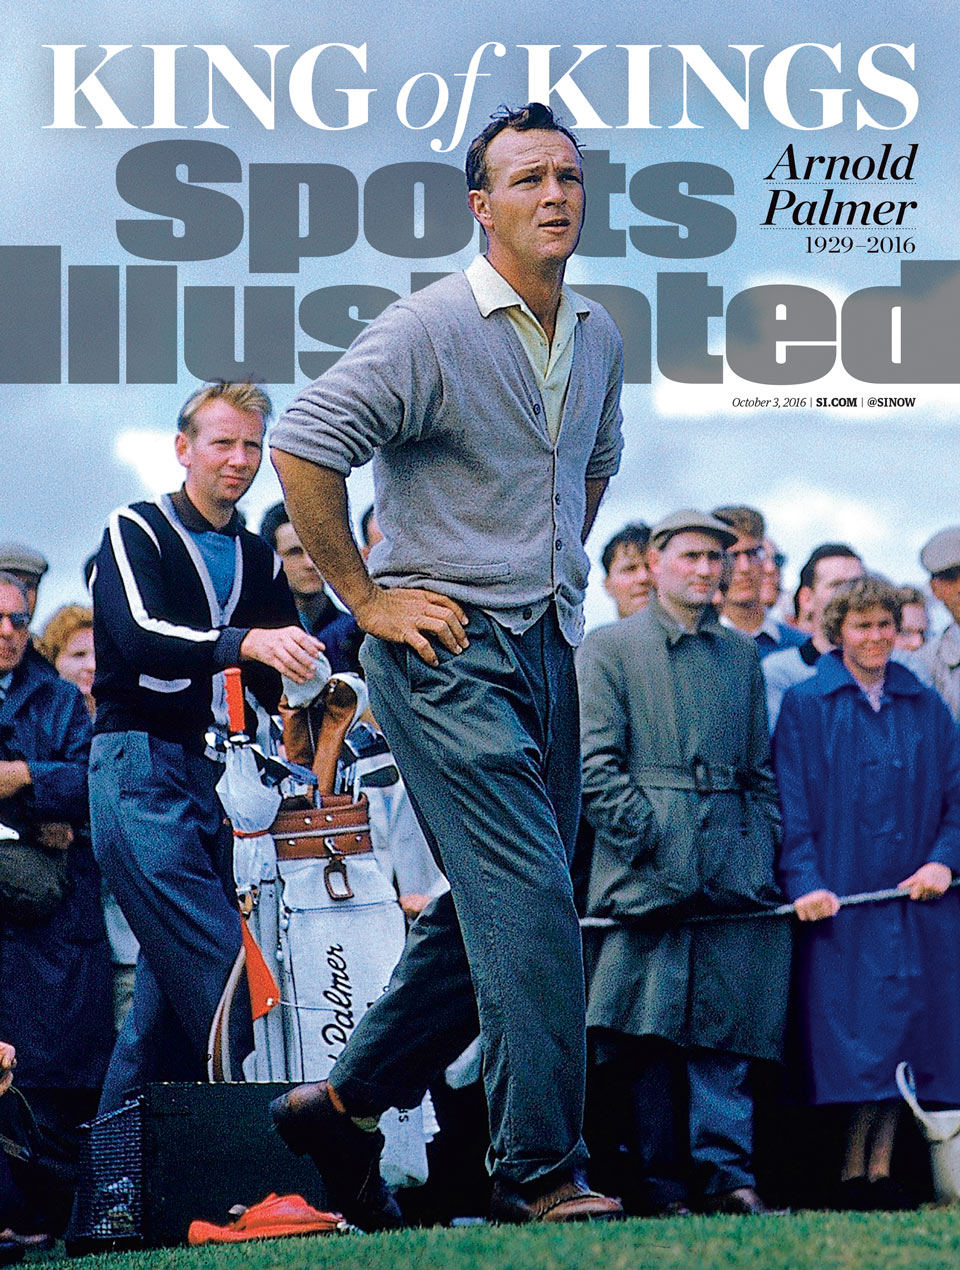 Arnold Palmer is featured on the upcoming cover of Sports Illustrated.